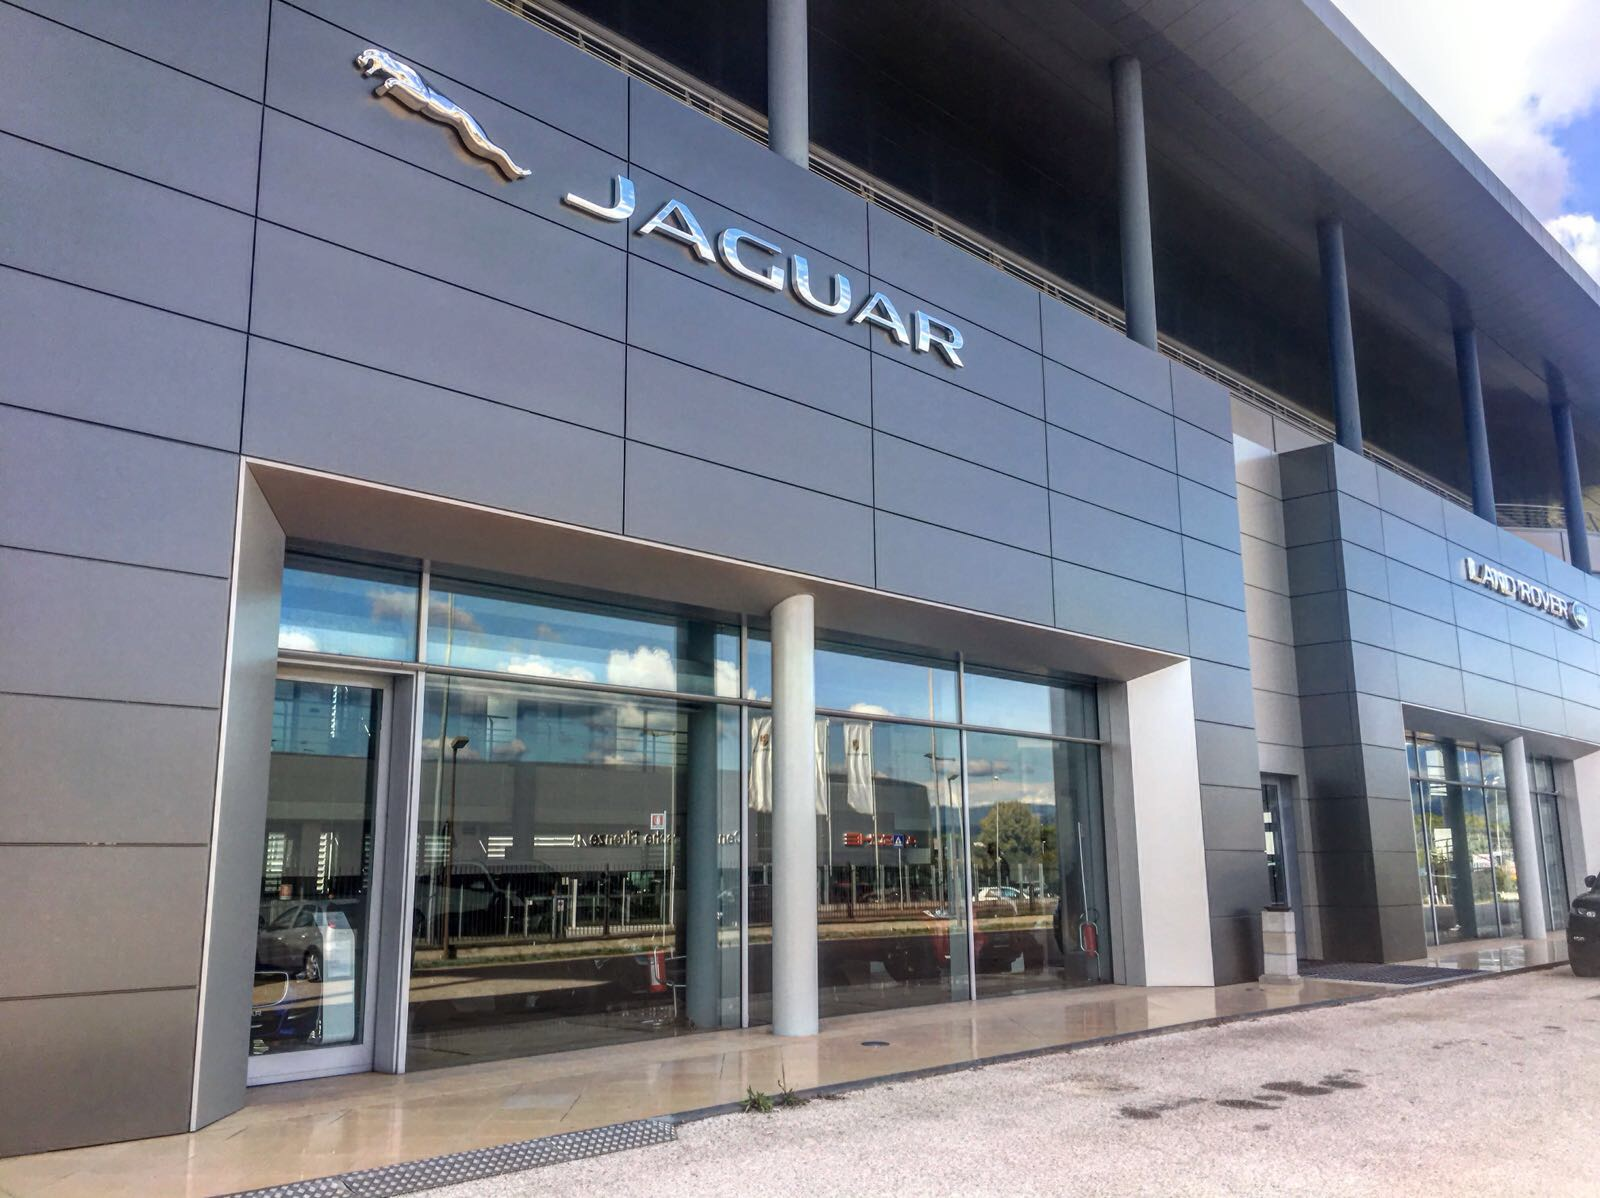 Jaguar Driving Day: Preparati a vivere una giornata di grandi performance